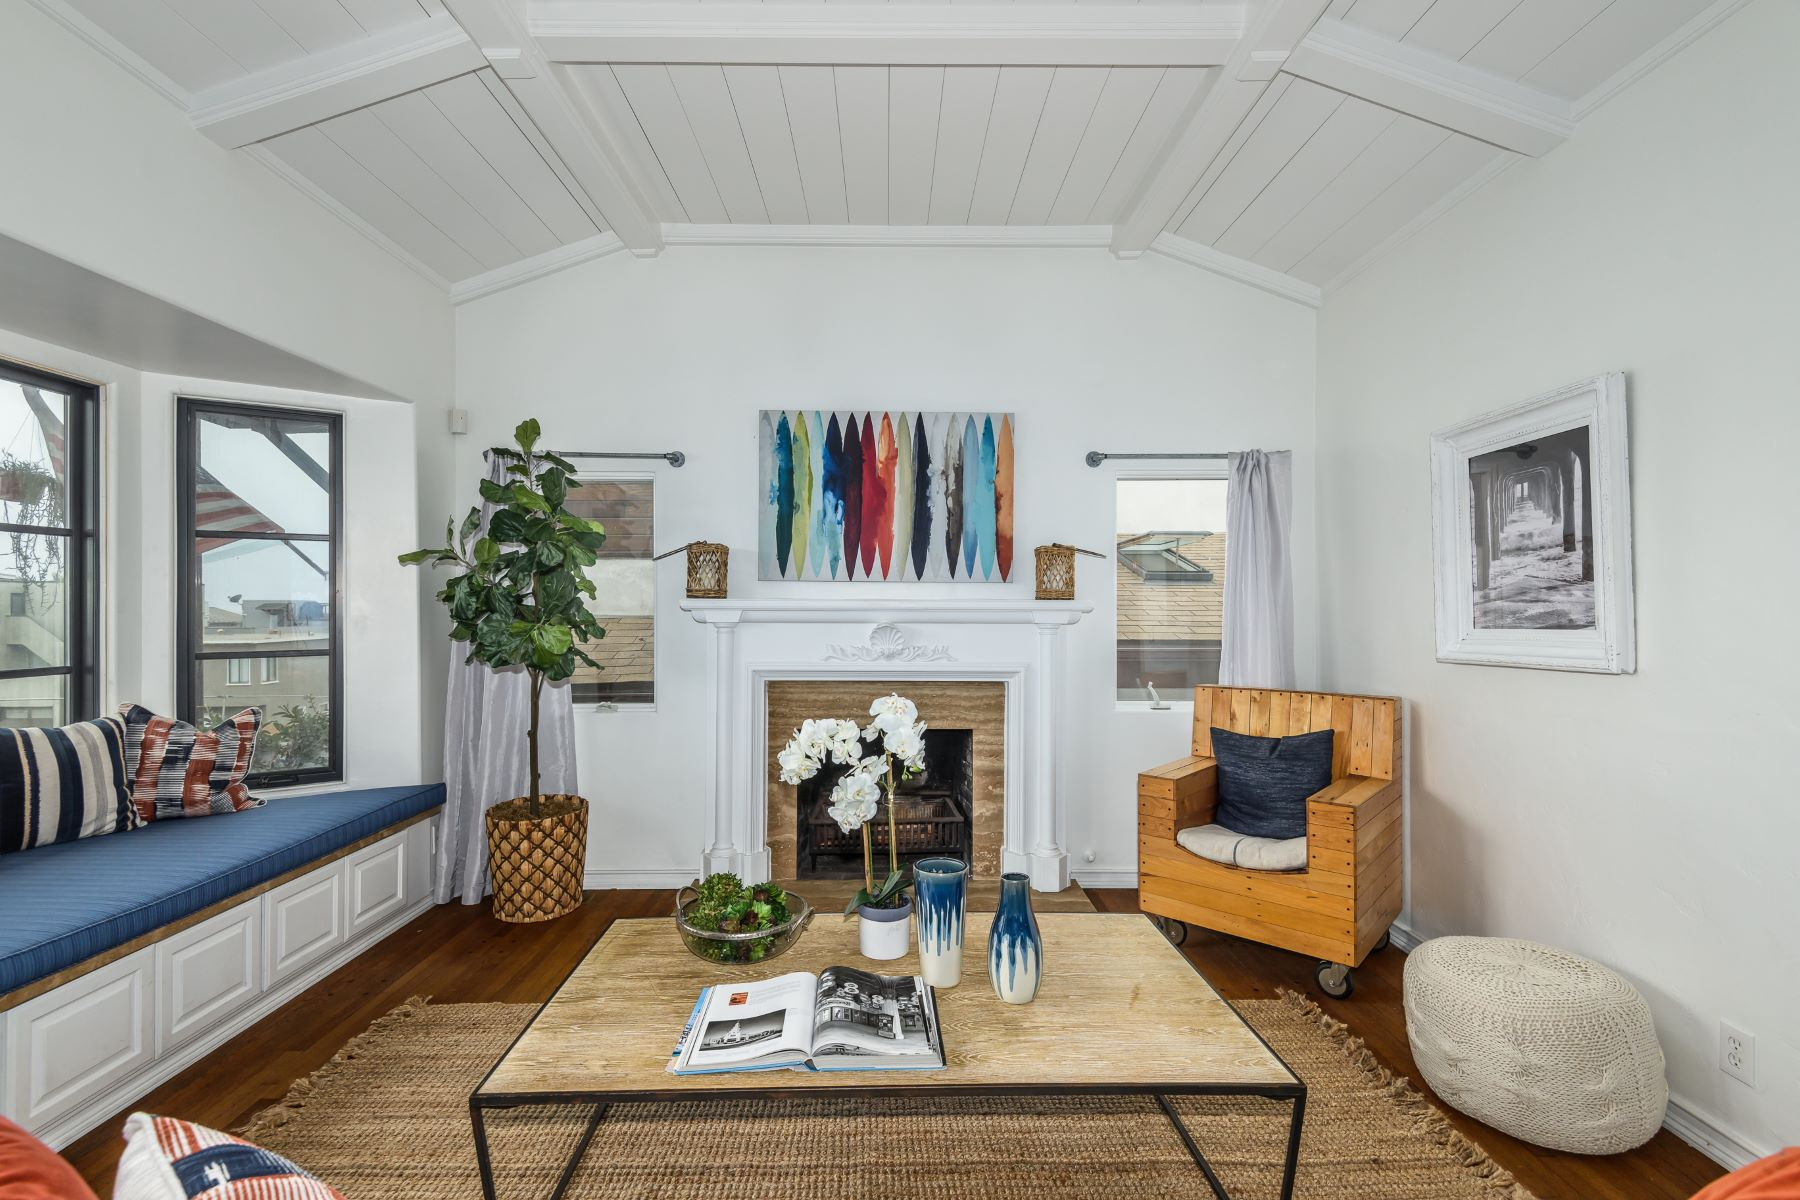 Single Family Homes for Sale at 231 27th Street, Hermosa Beach, CA 90254 231 27th Street Hermosa Beach, California 90254 United States